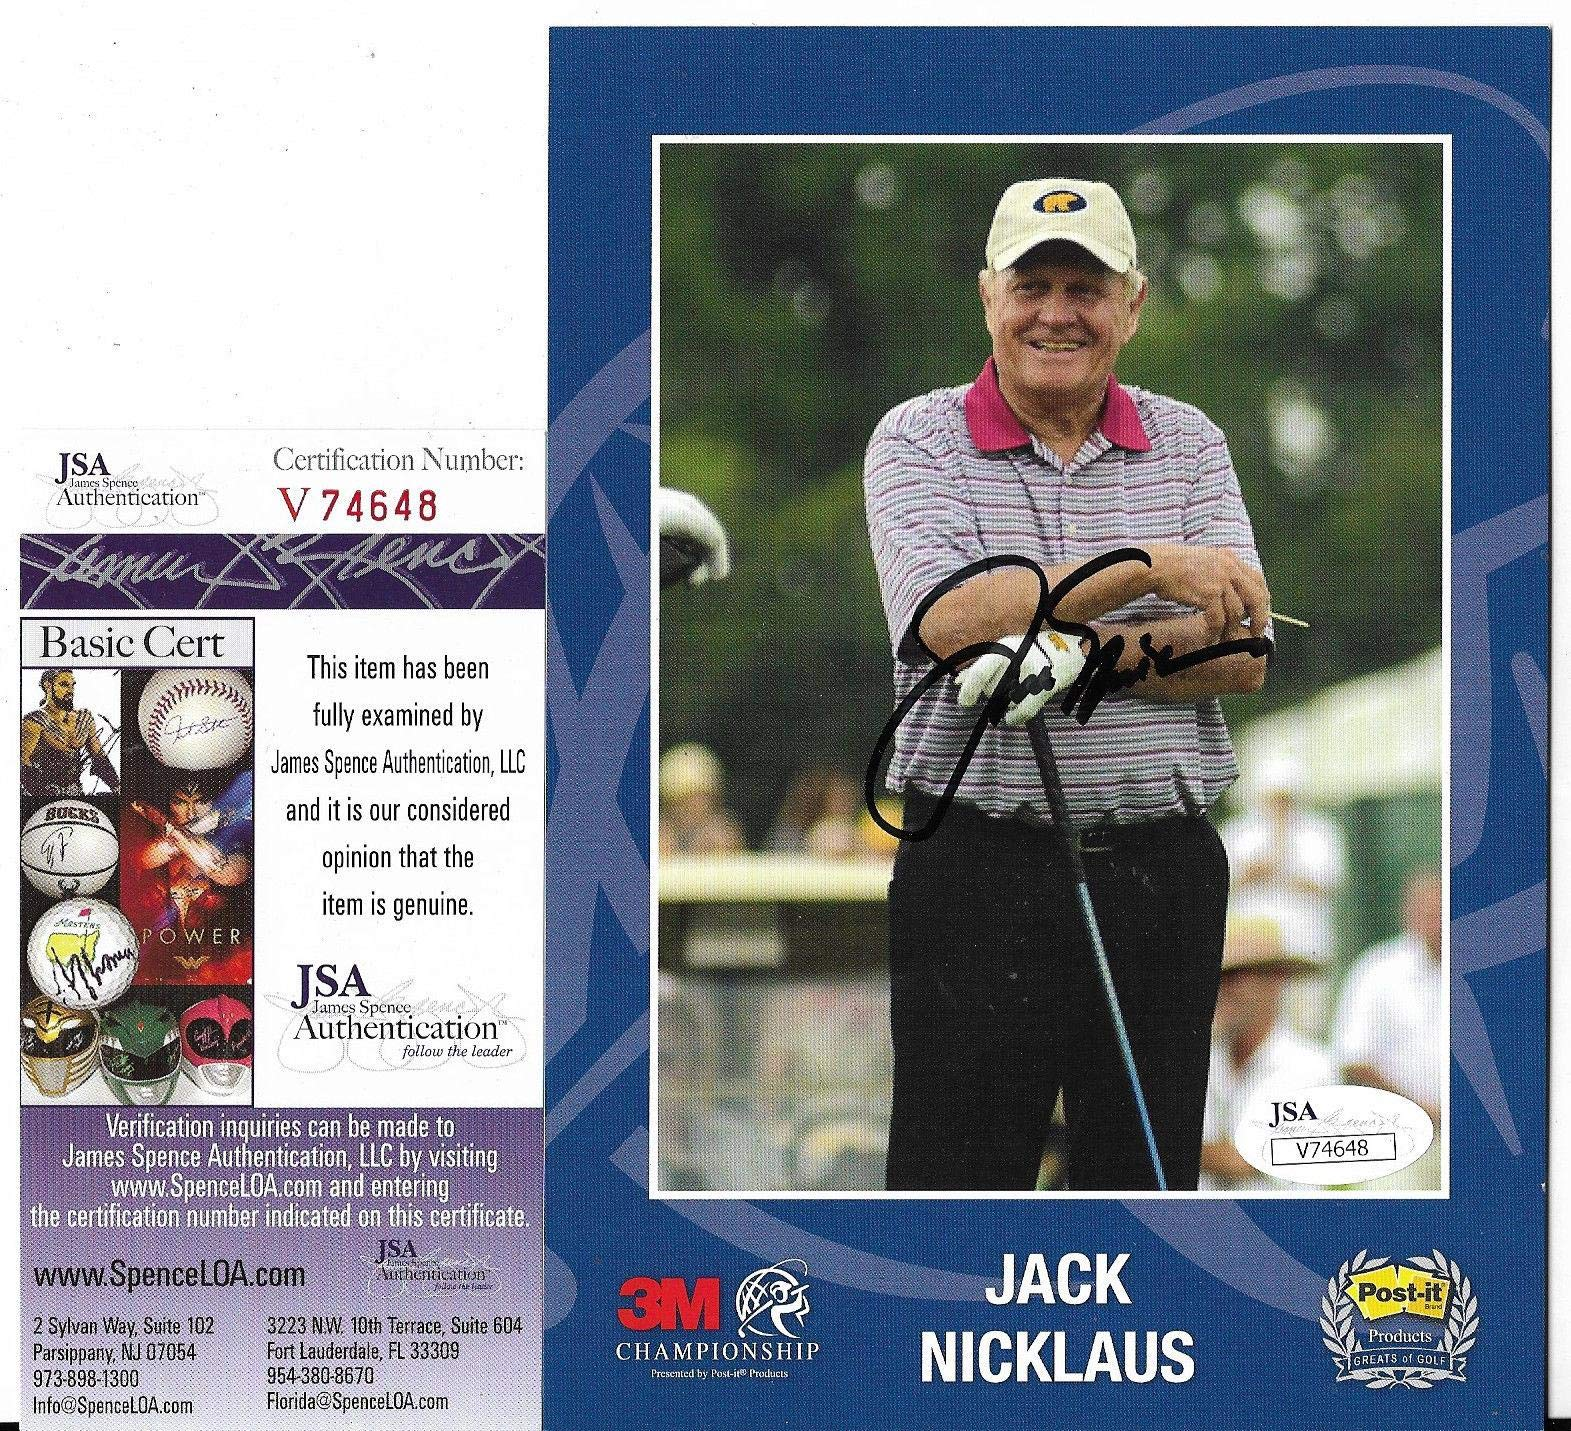 Jack Nicklaus Golf Legend Signed Autographed 6x8 Photo Coa Authenticated JSA Certified Autographed Golf Equipment